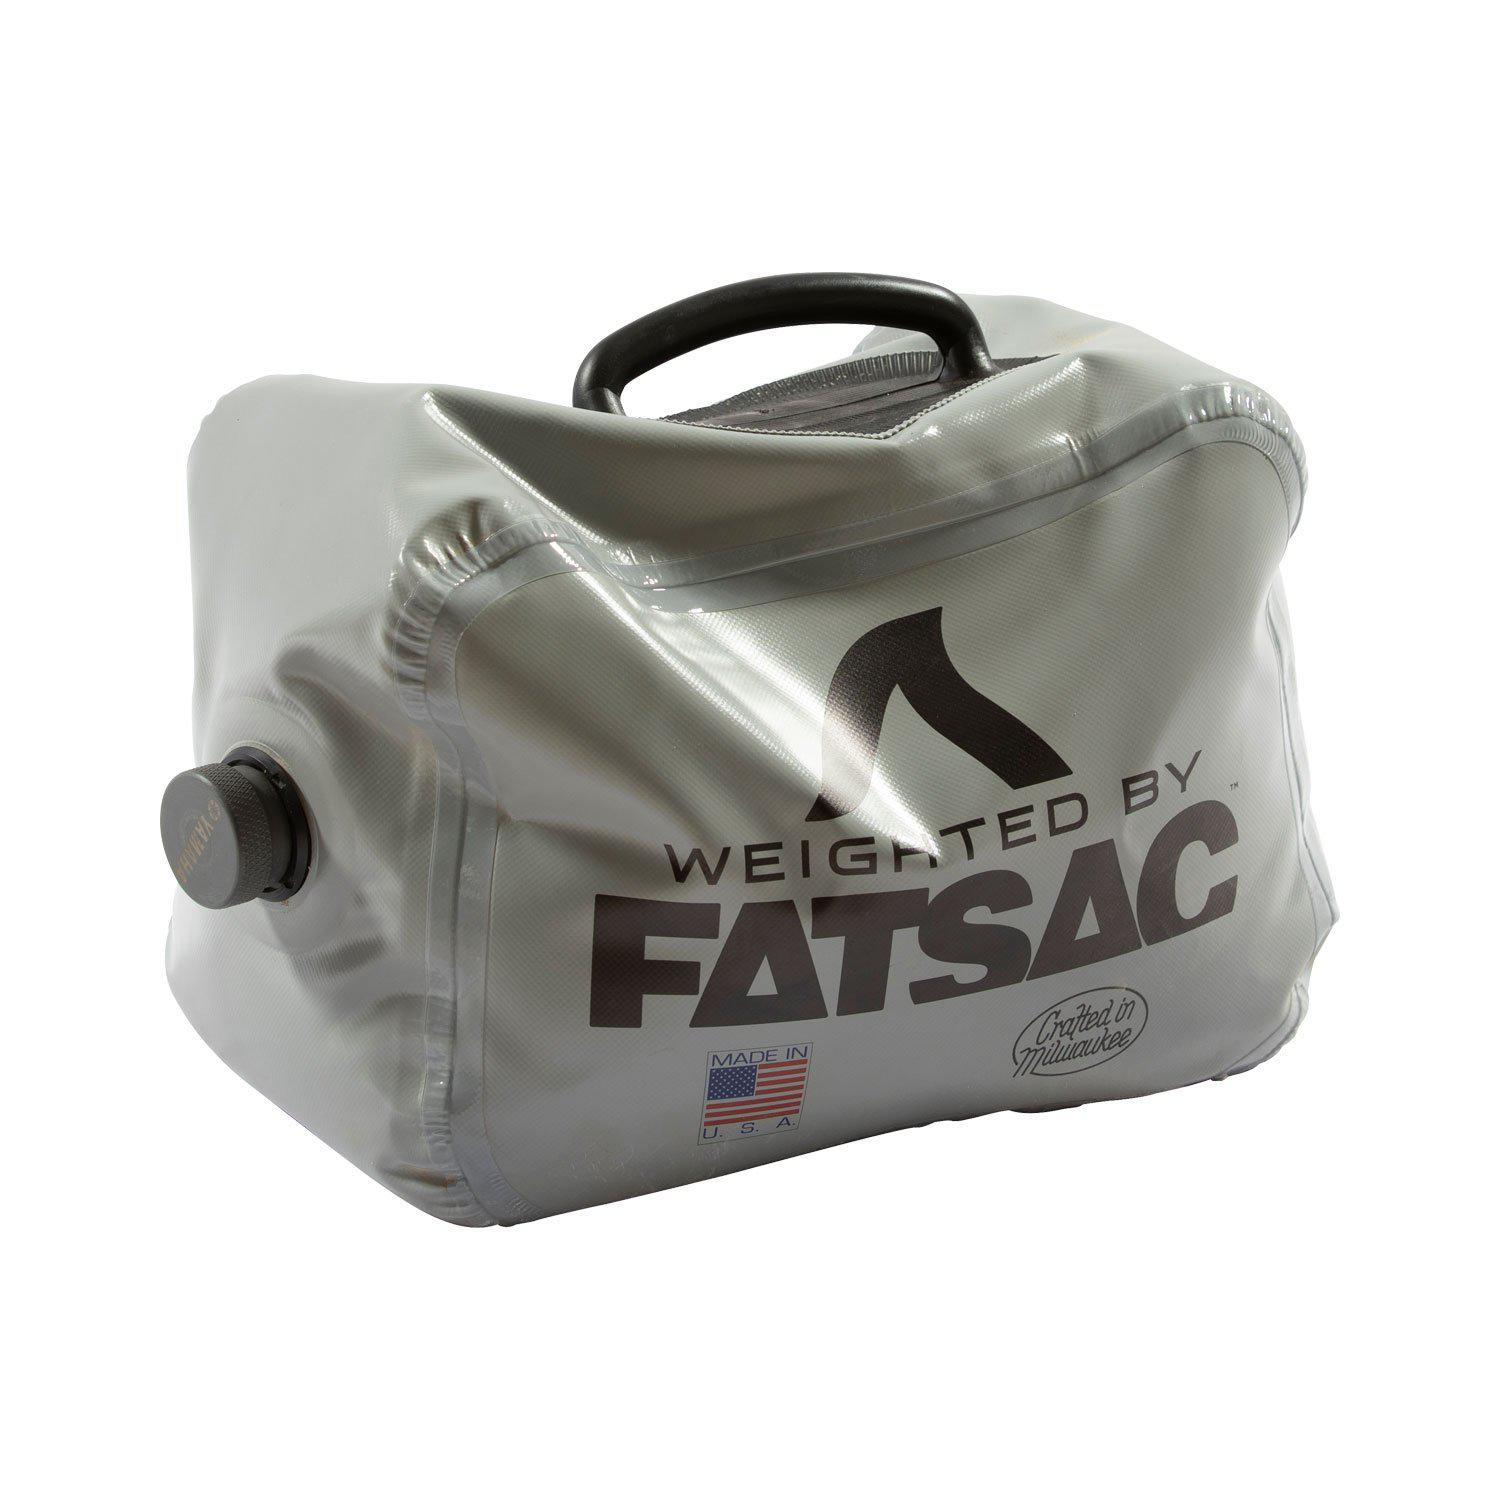 NautiCurl FatSac Fillable Weight Bags Ballast with easy lift handle - weight bag, lead wake, lead weight